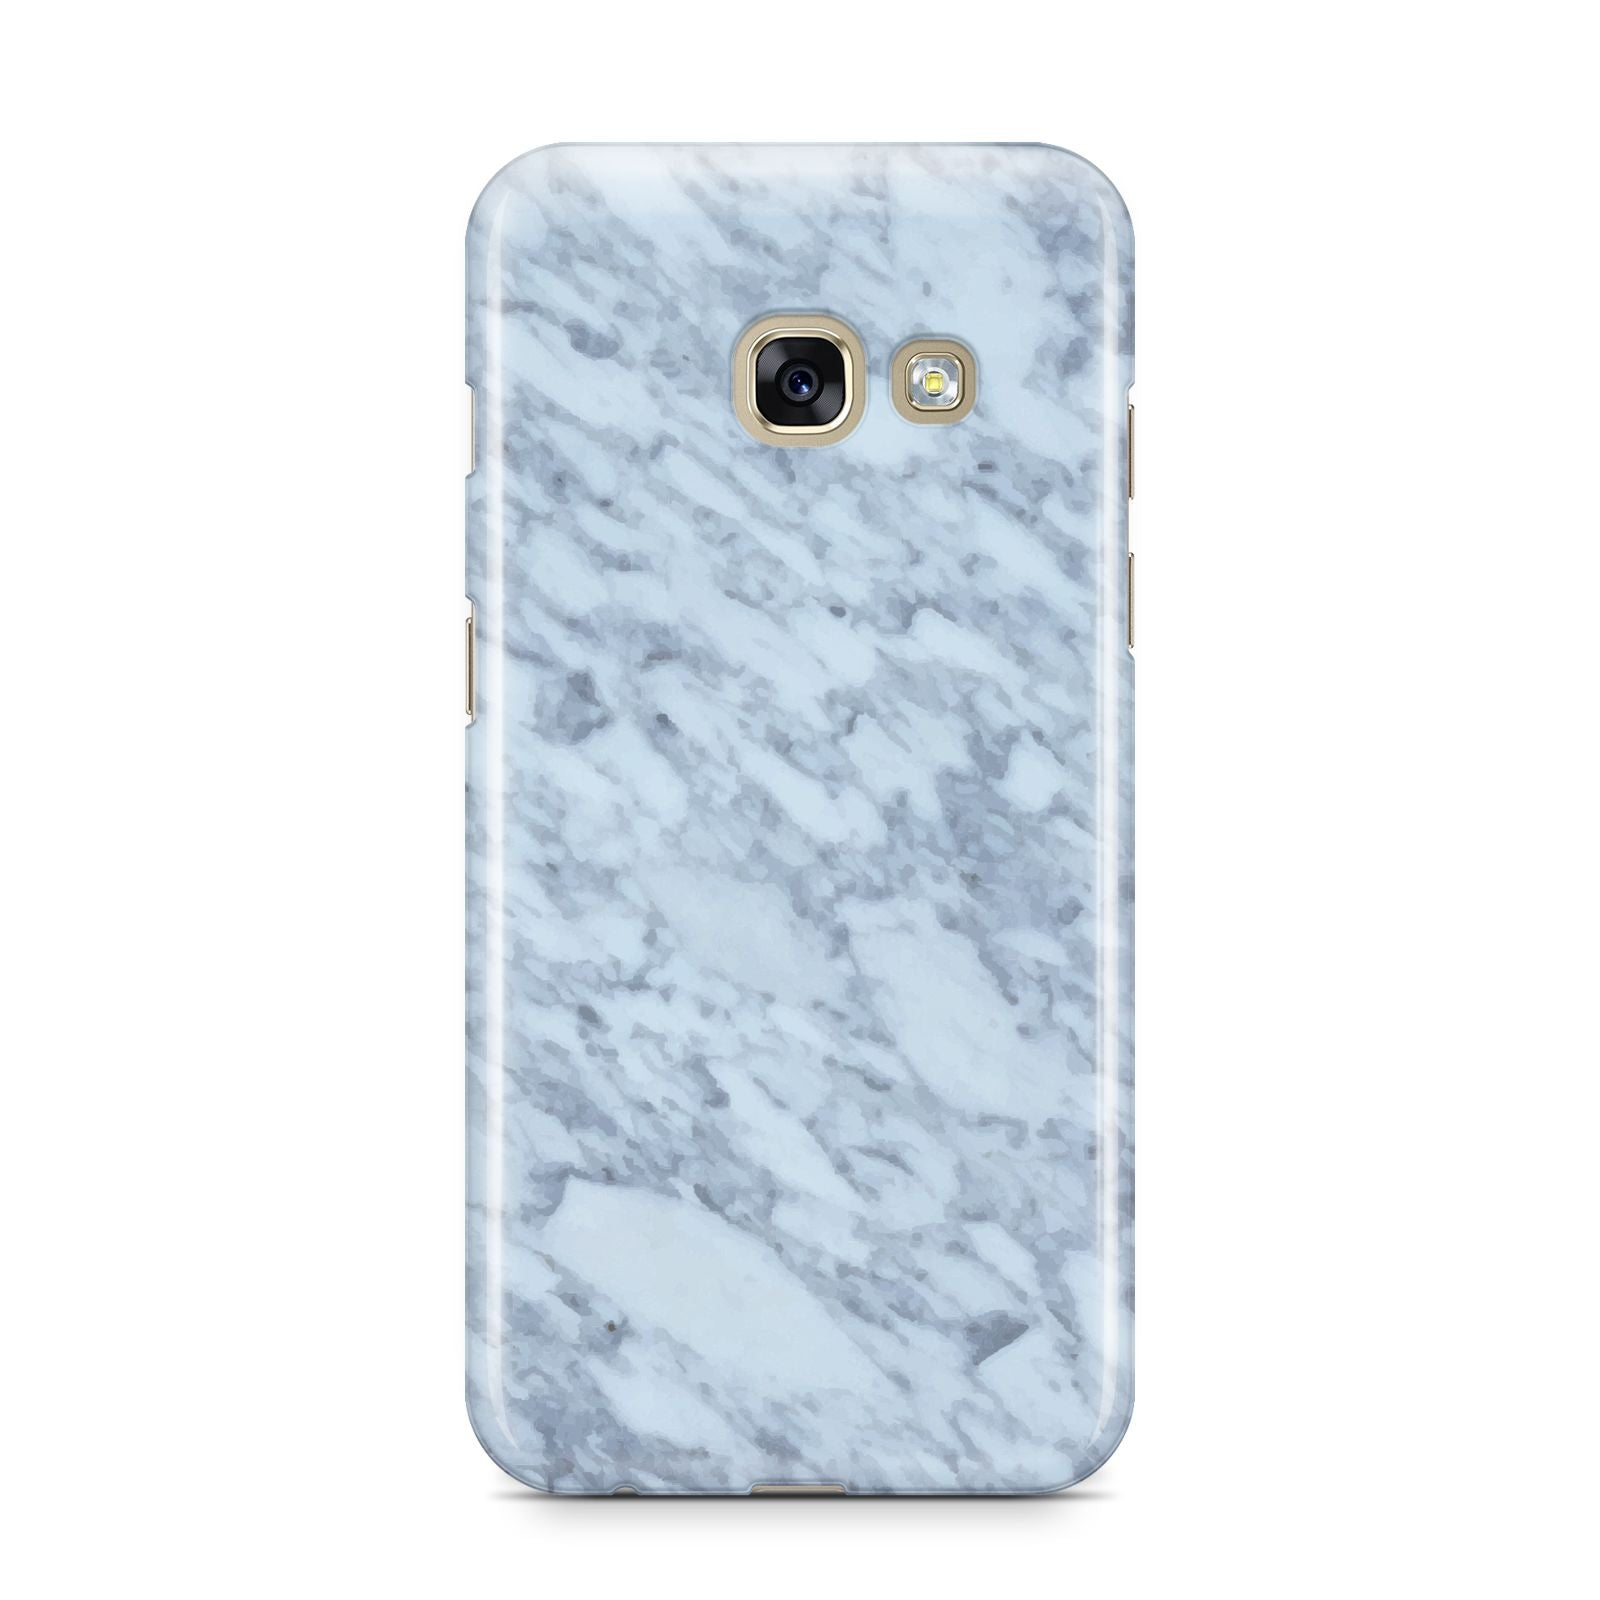 Faux Marble Grey 2 Samsung Galaxy A3 2017 Case on gold phone